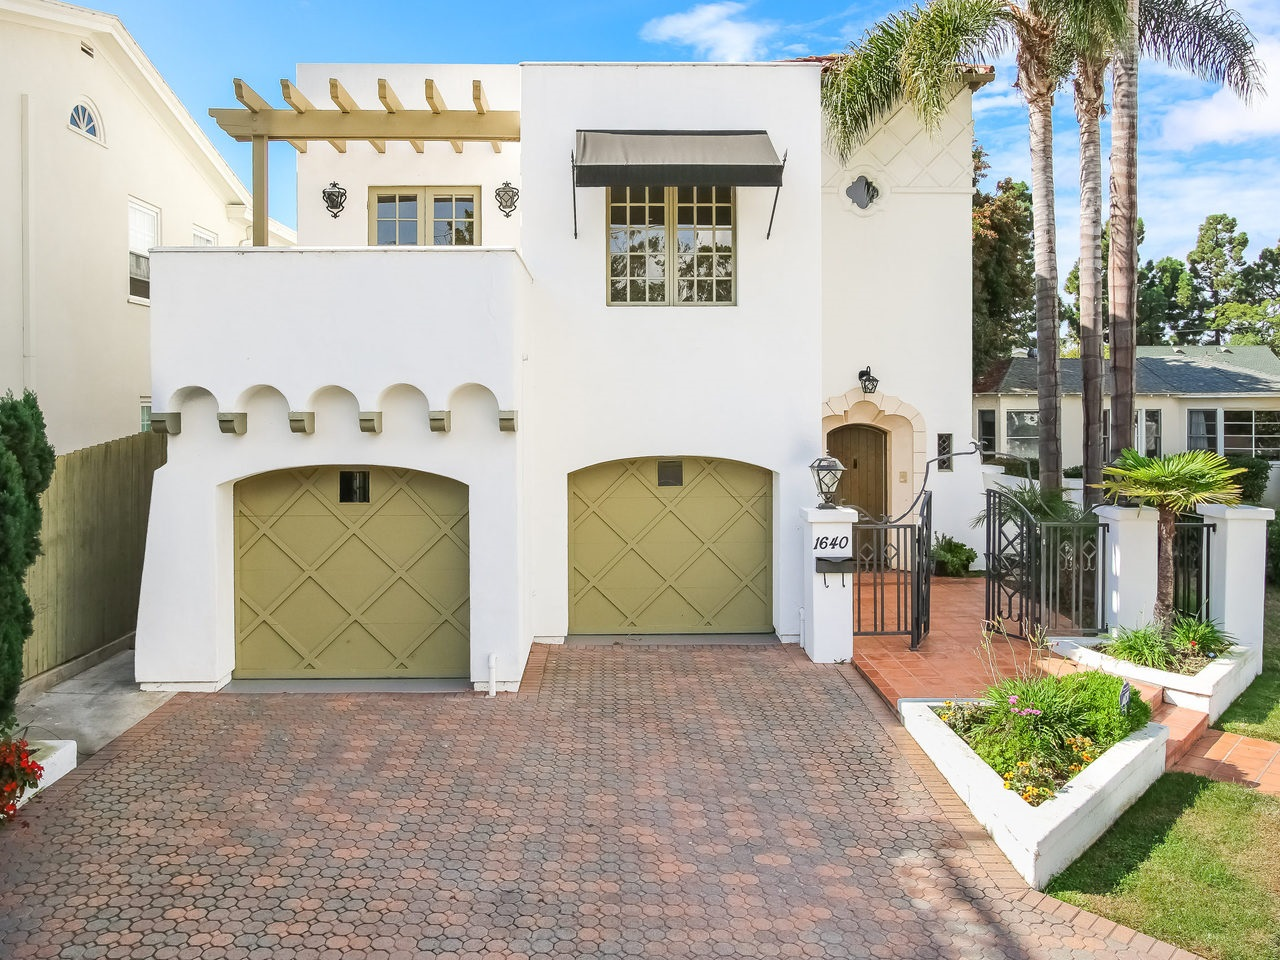 Detached, Mediterranean/Spanish - Coronado, CA (photo 1)